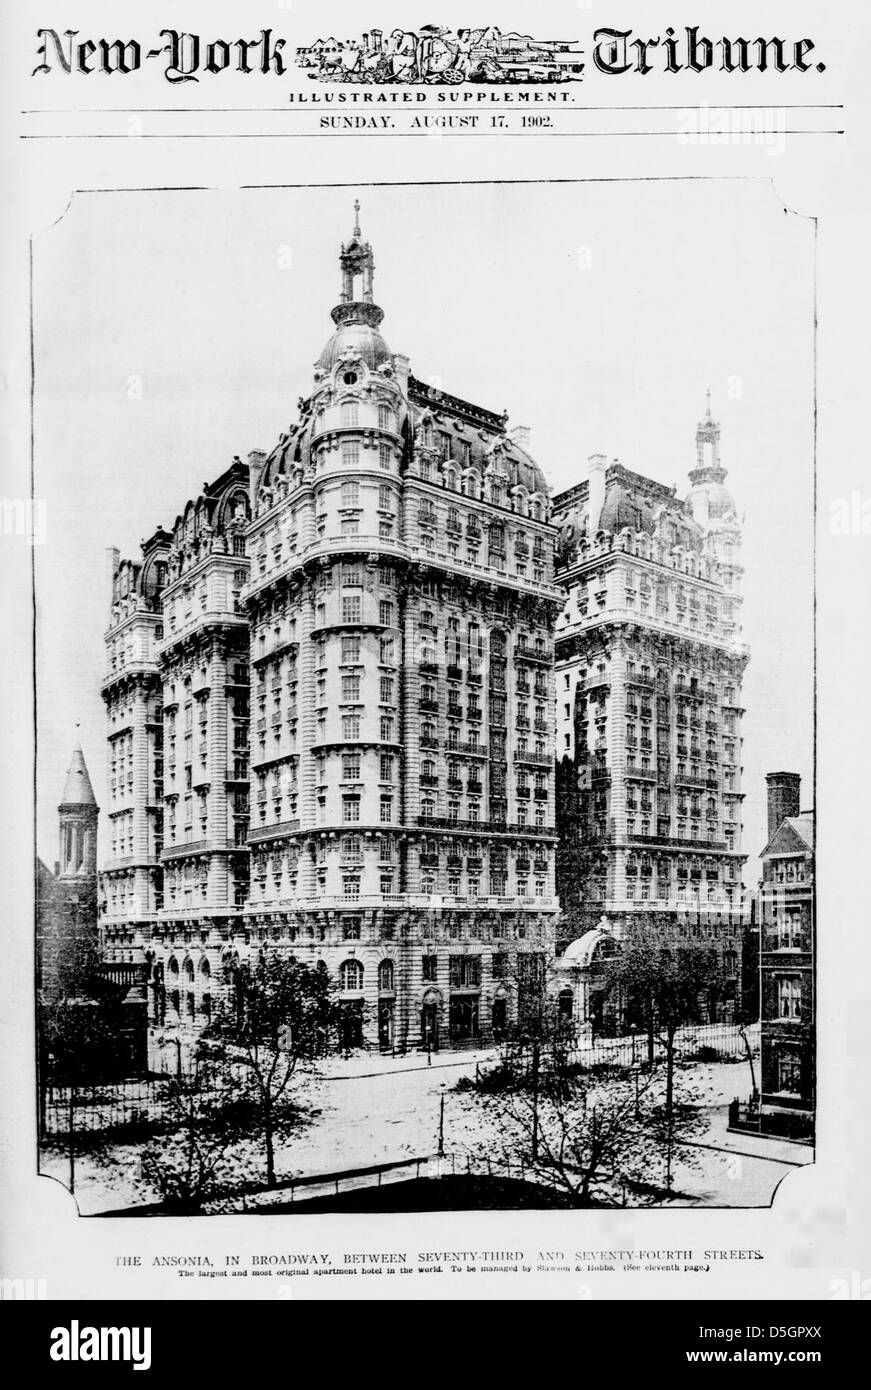 The Ansonia, in Broadway, between Seventy-third and Seventy-fourth Streets (LOC) - Stock Image